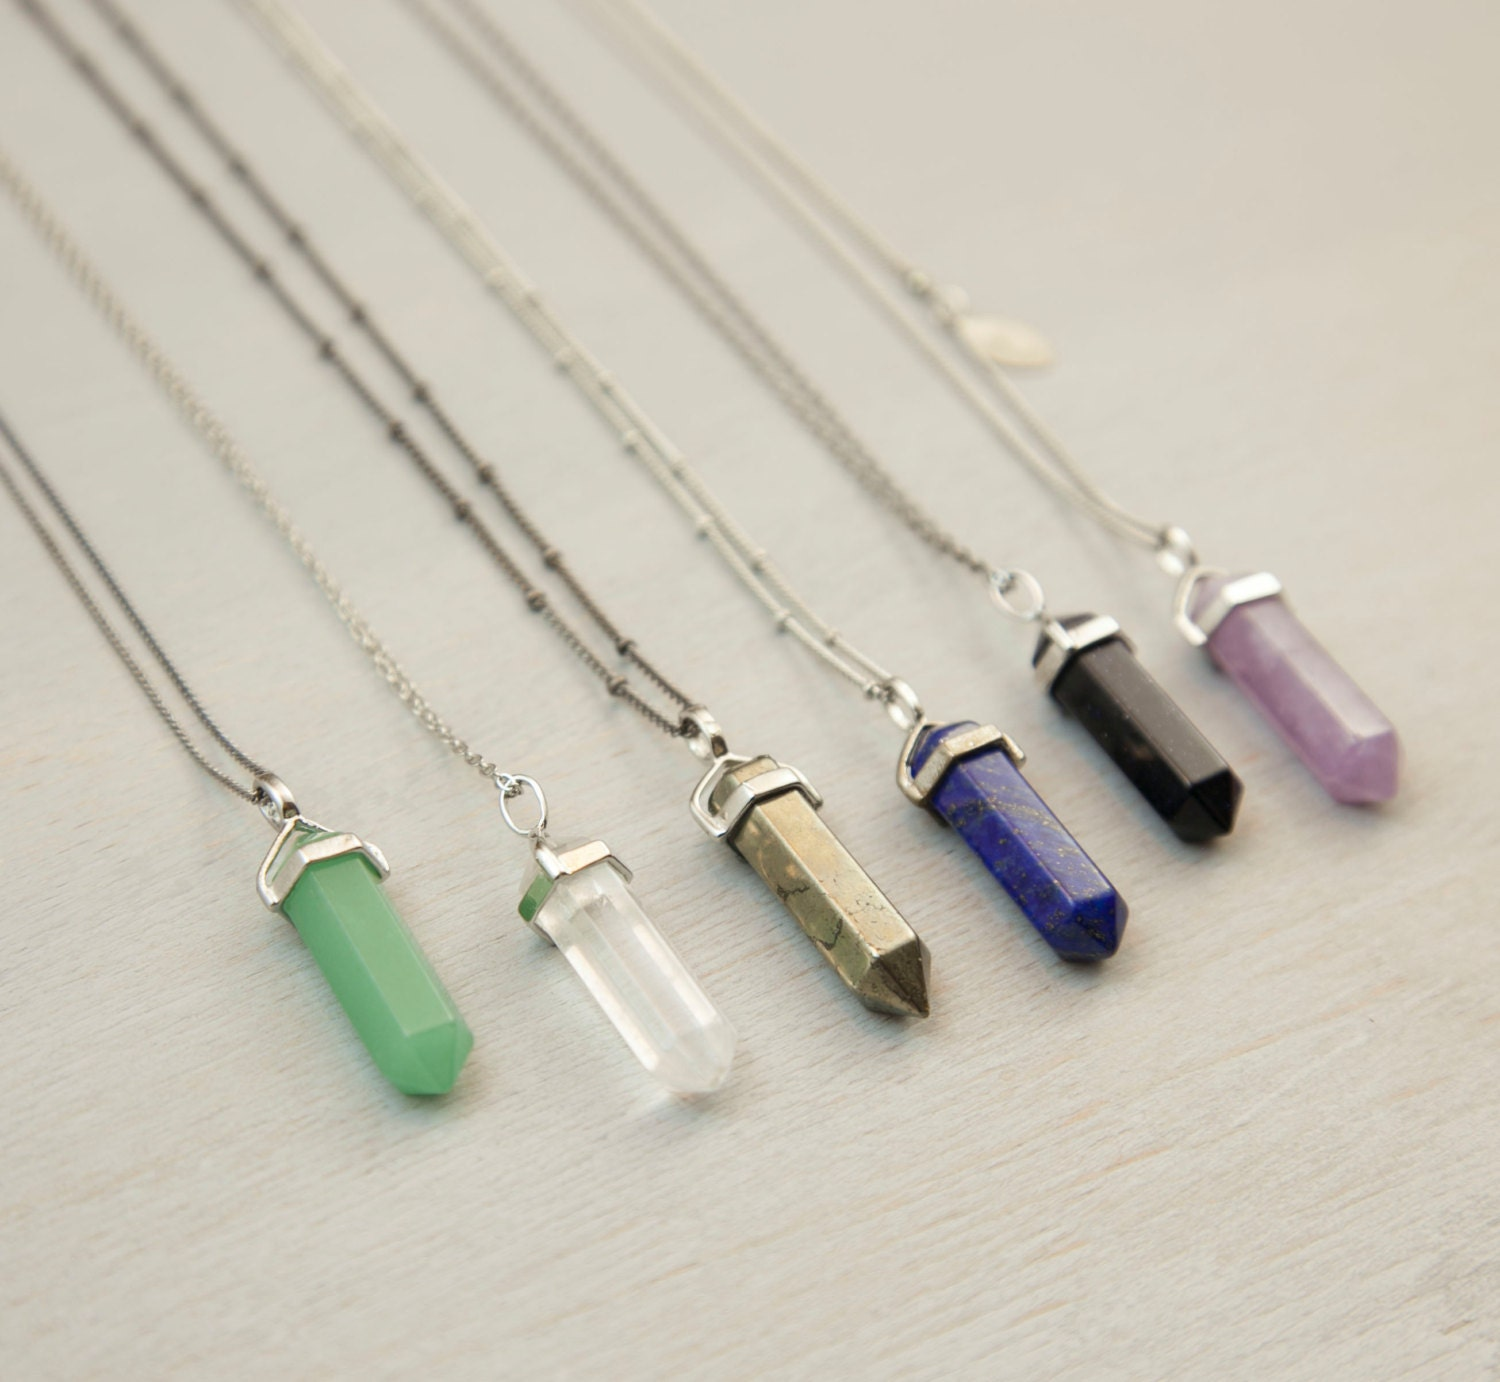 bullet natural spiritual product column women quartz necklaces hot sale crystal best seekers necklace stone pendants hexagonal vintage for